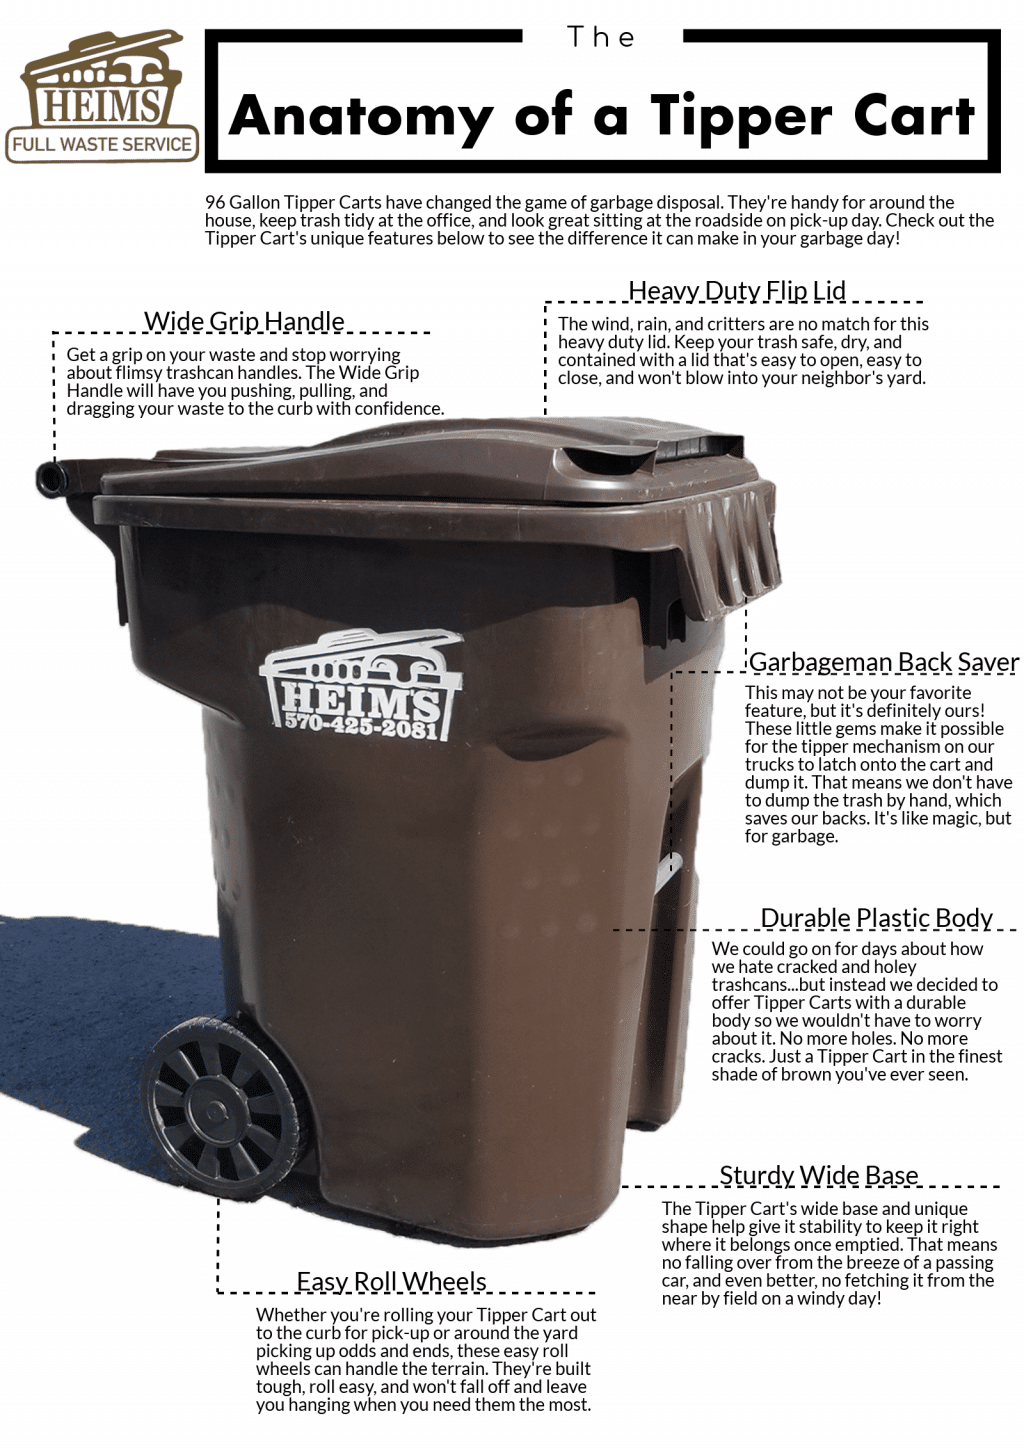 Our 96 Gallon Tipper Carts have a wide grip handle, heavy duty flip lid, a durable plastic body, a wide base for added stability, and easy roll wheels to make it the ultimate waste receptacle.